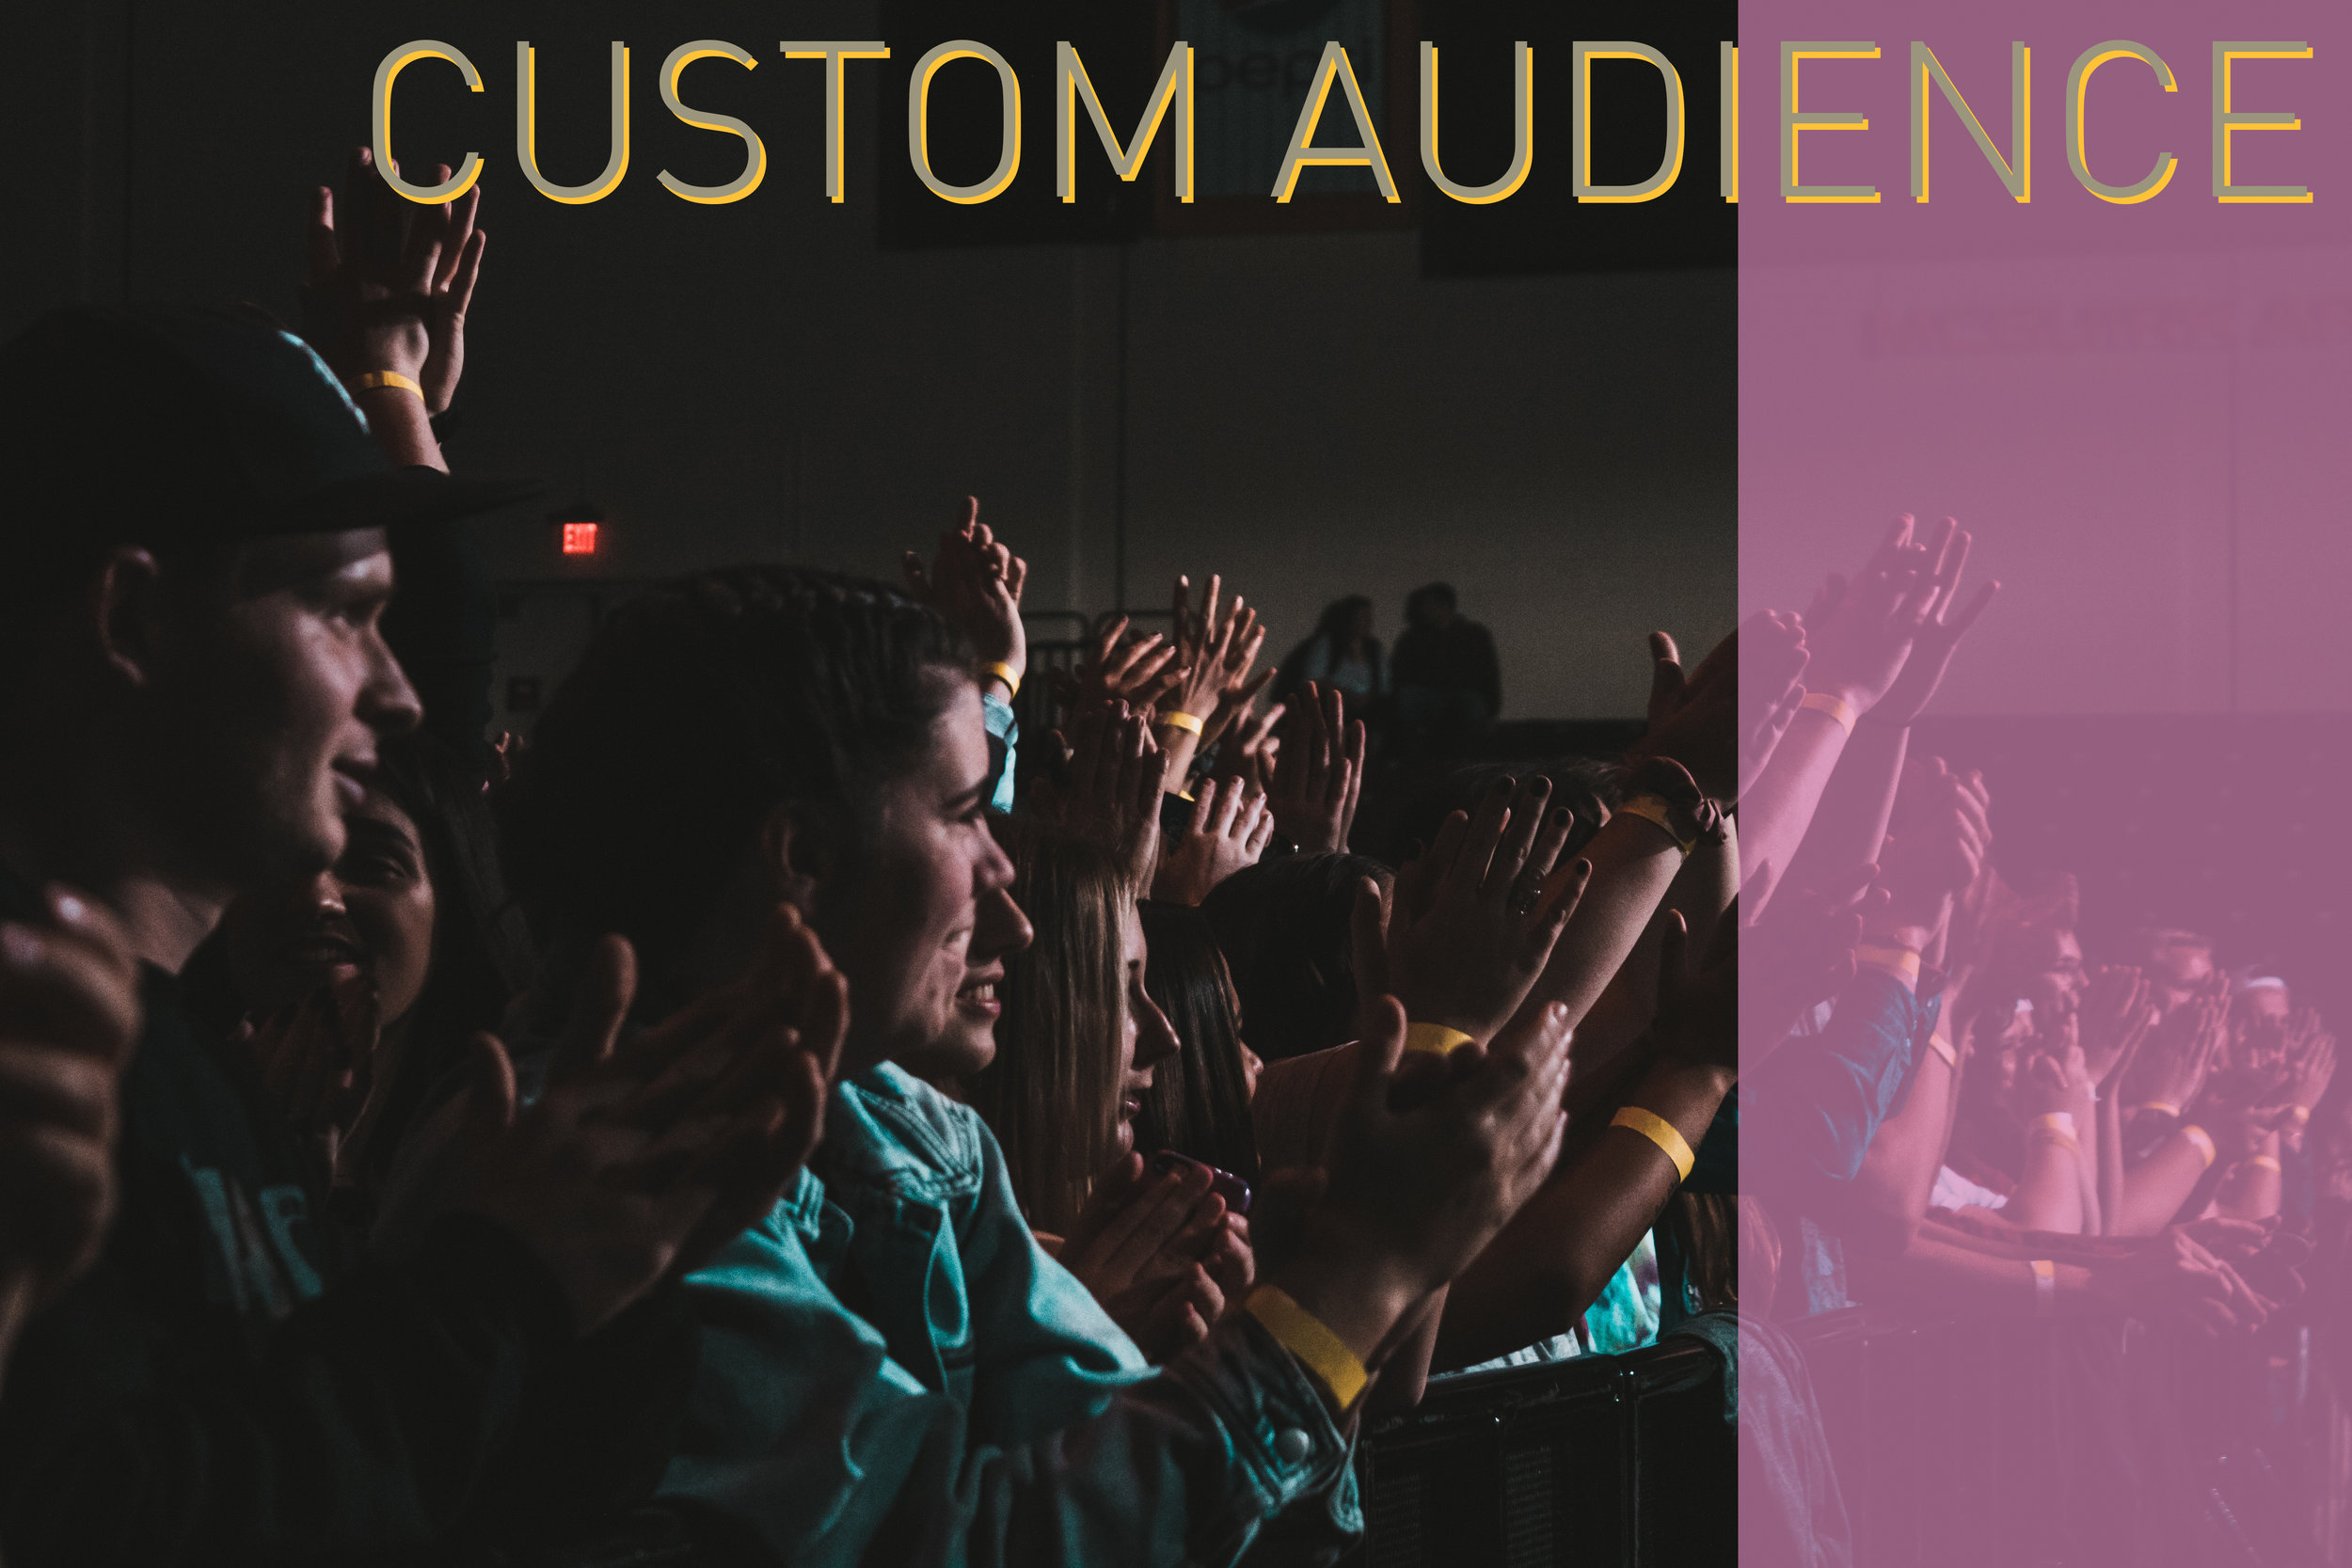 Custom-Audience.jpg